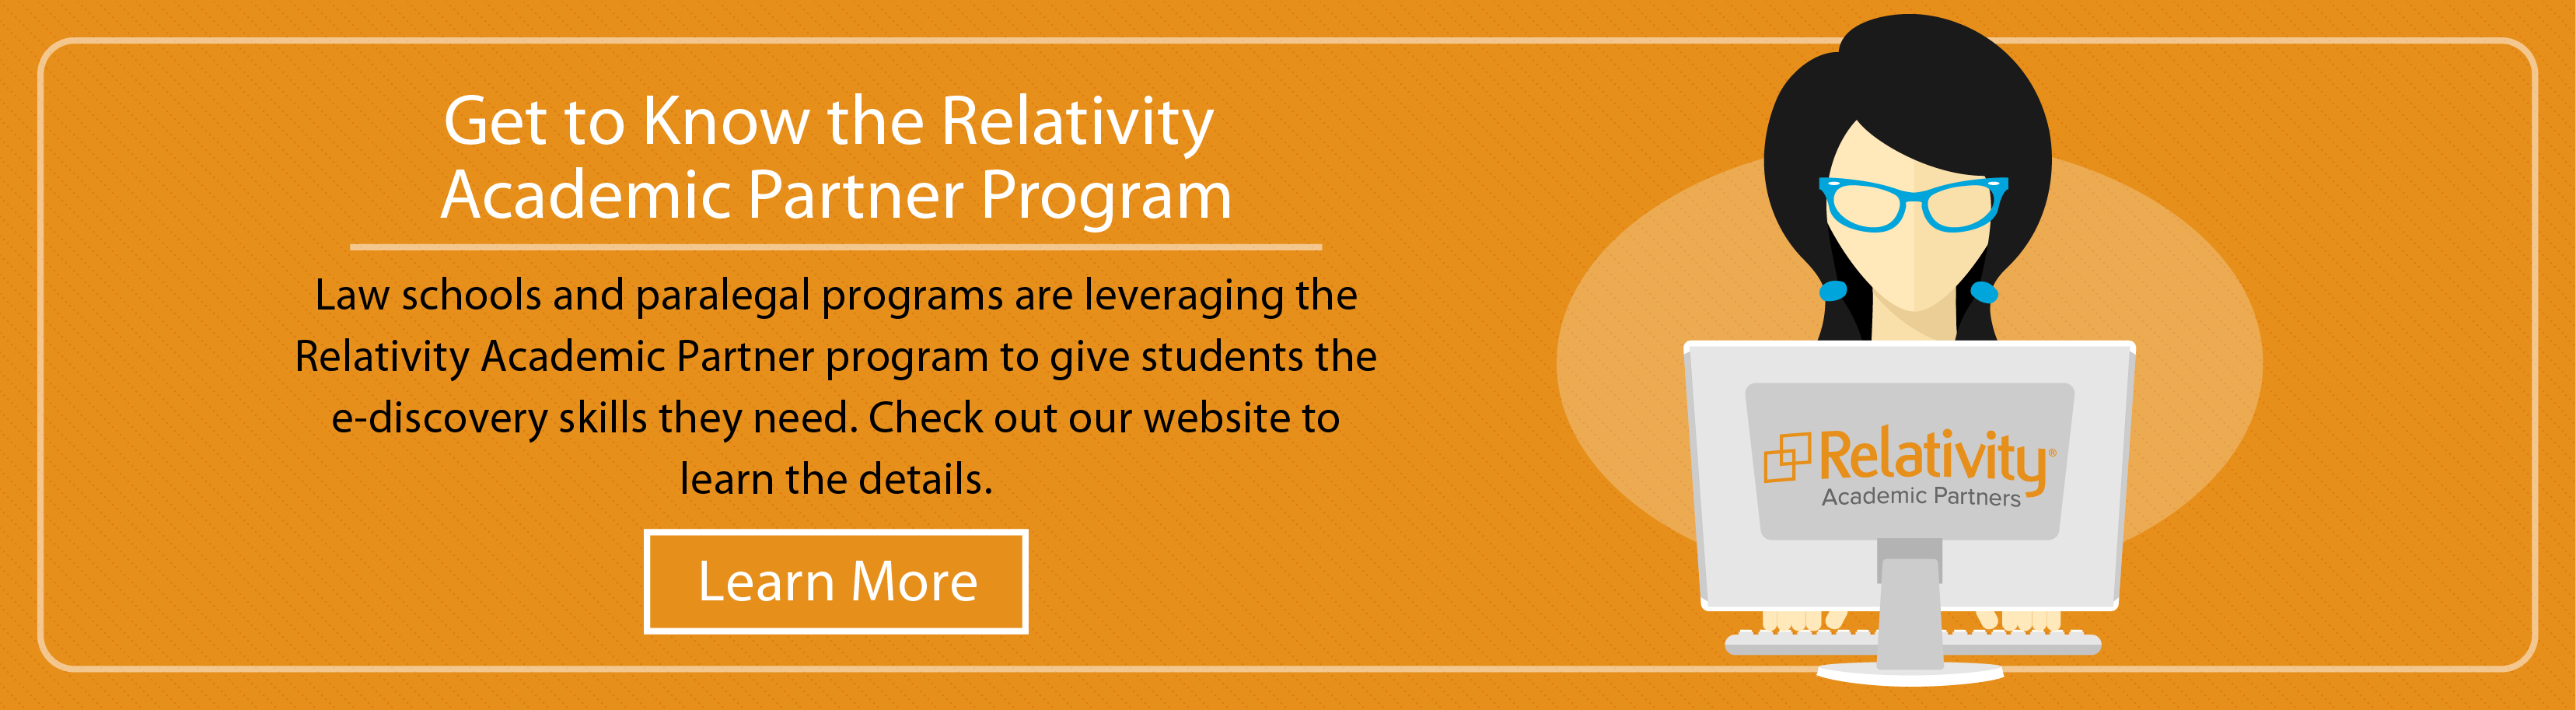 Learn More About the Relativity Academic Partner Program